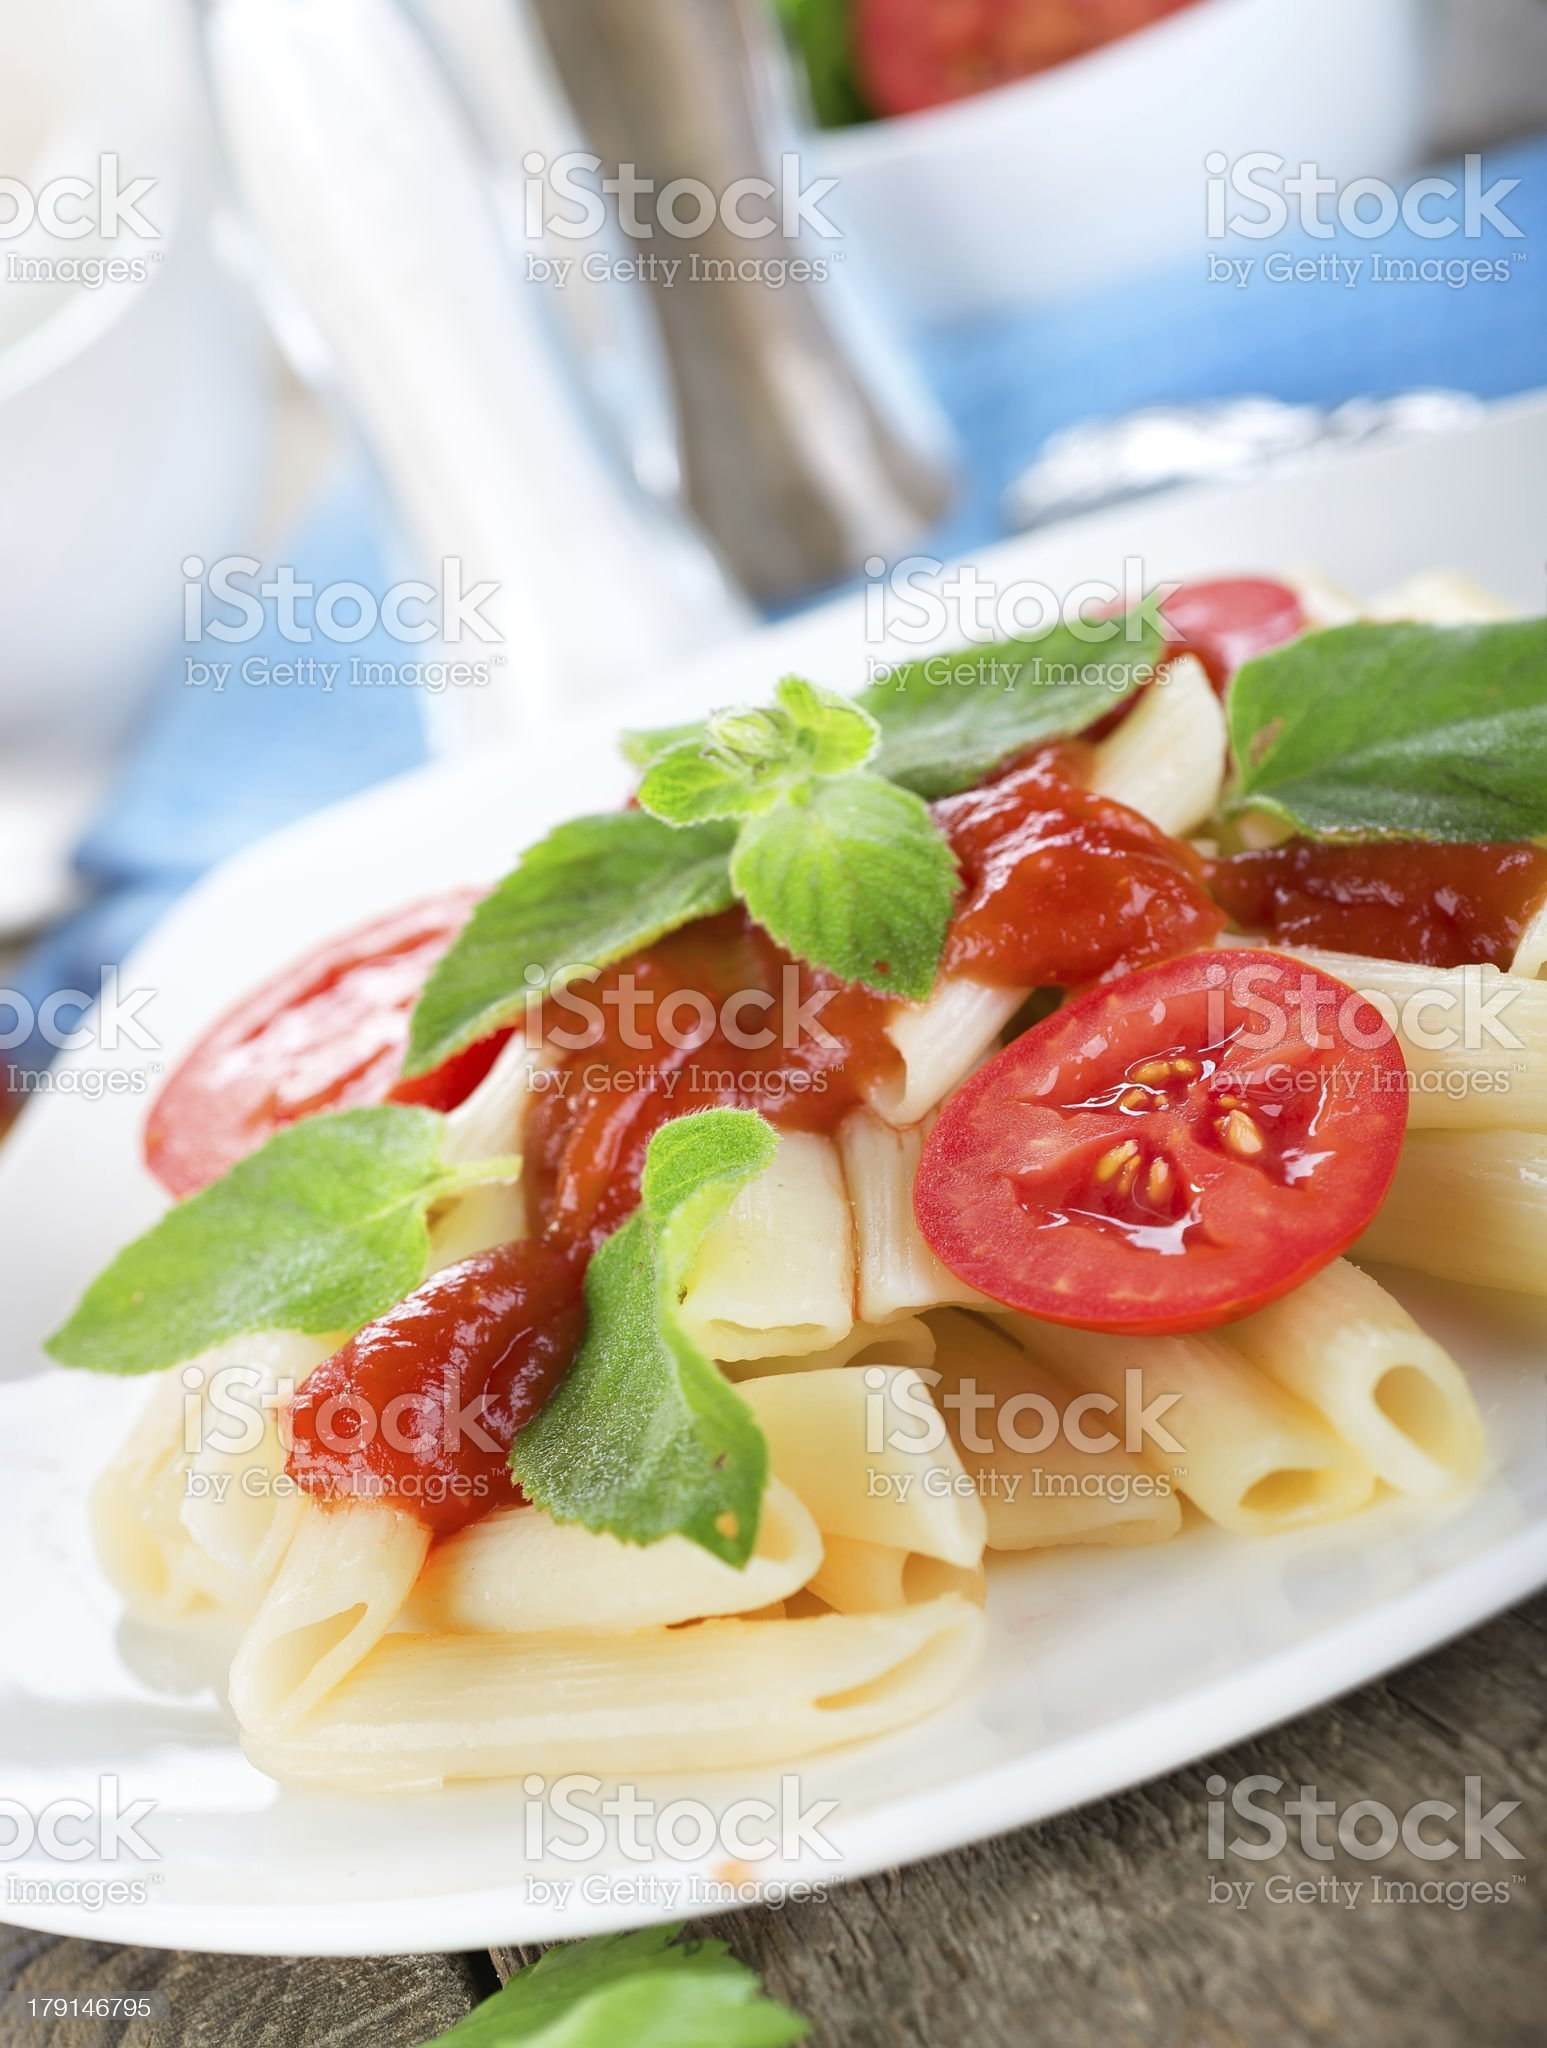 Tomatoes and ketchup on pasta royalty-free stock photo